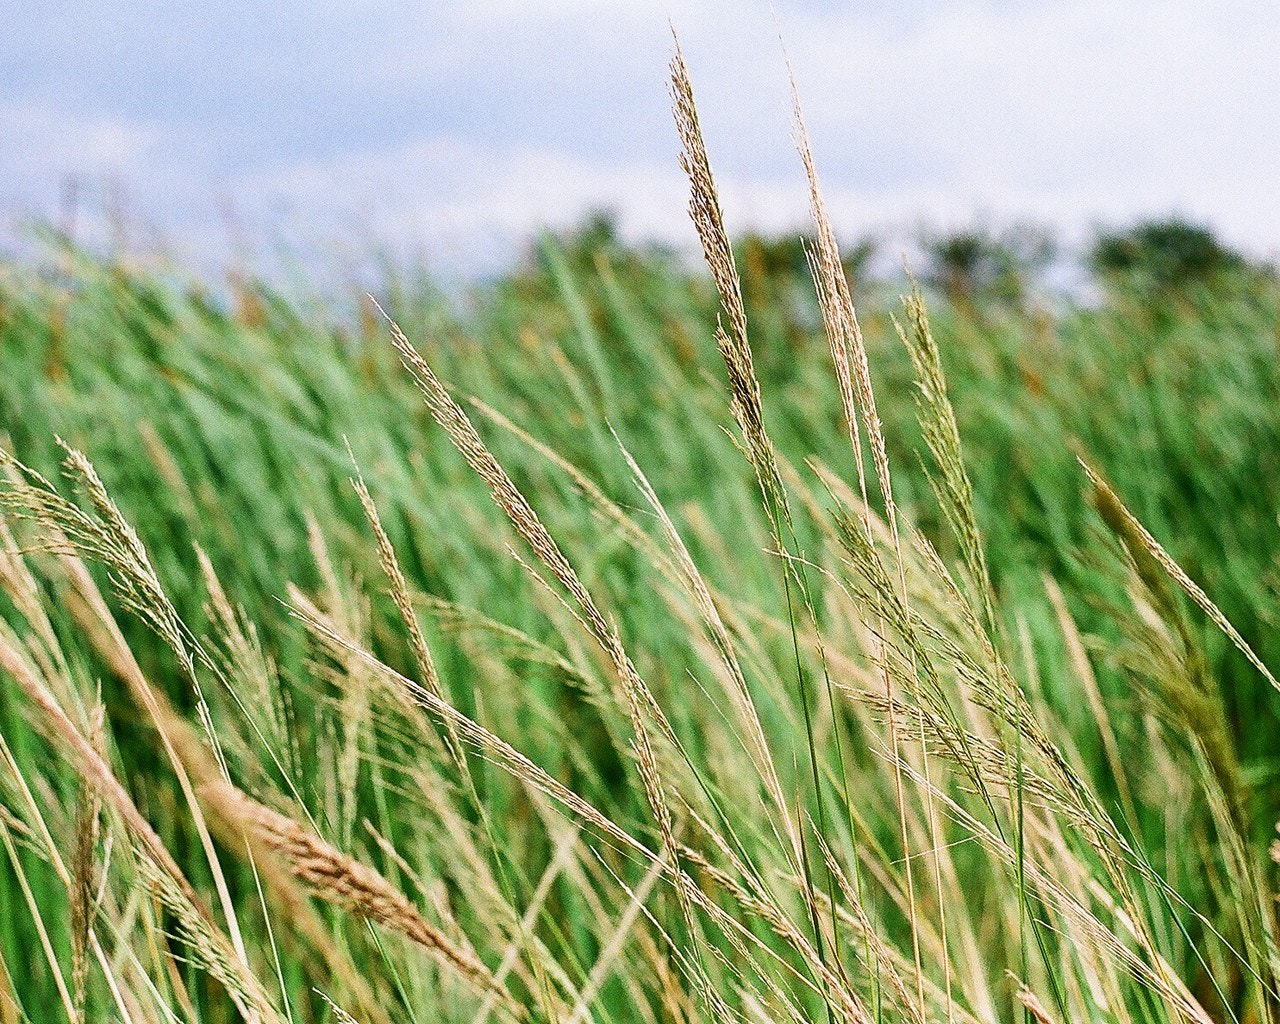 Photograph GRASS by Siripong Travels on 500px